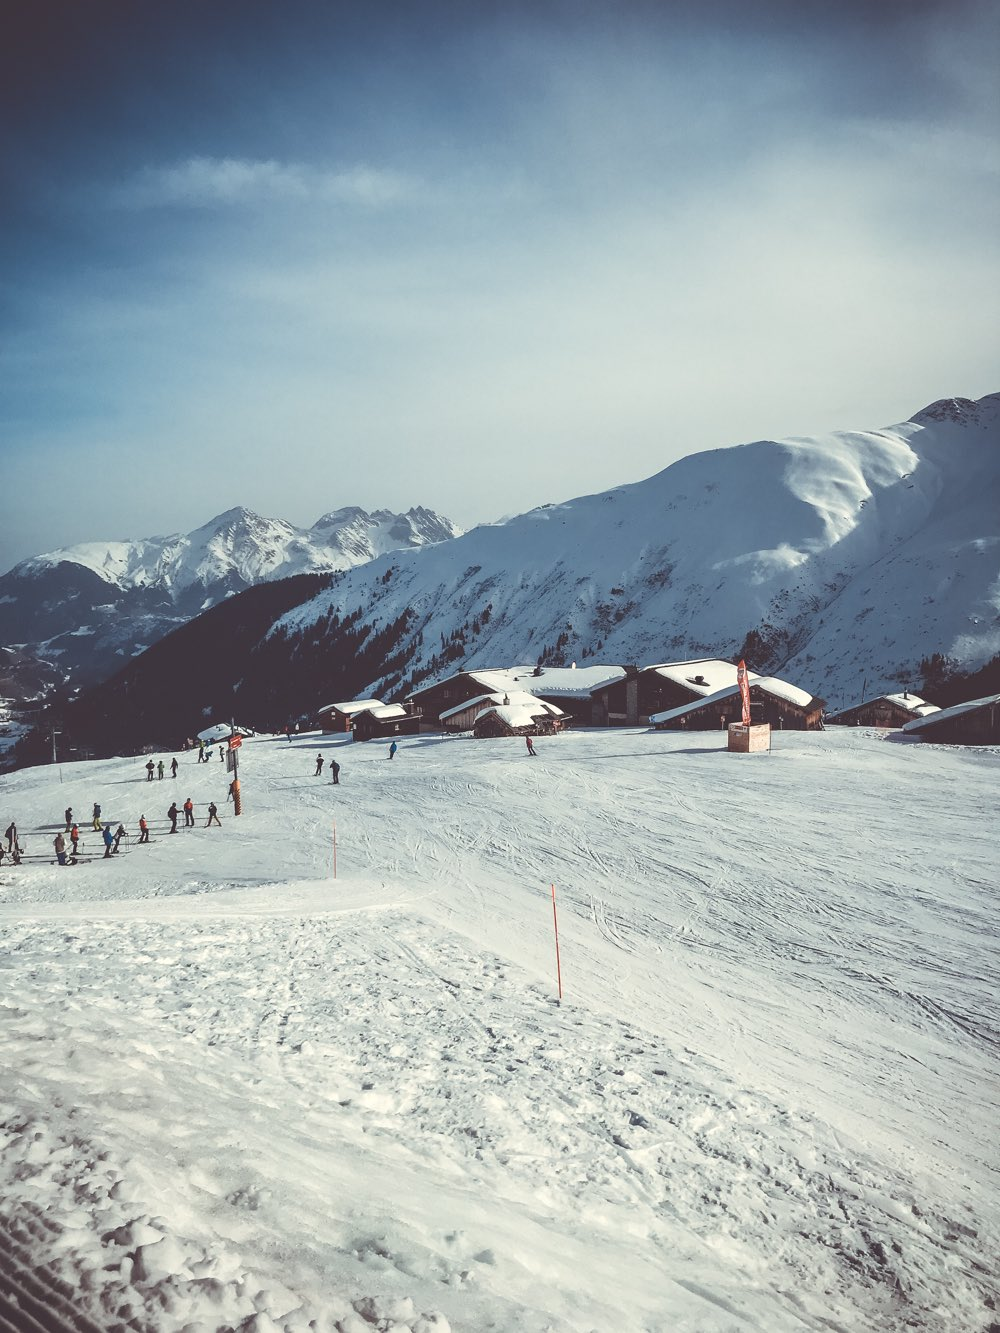 winter sports in switzerland